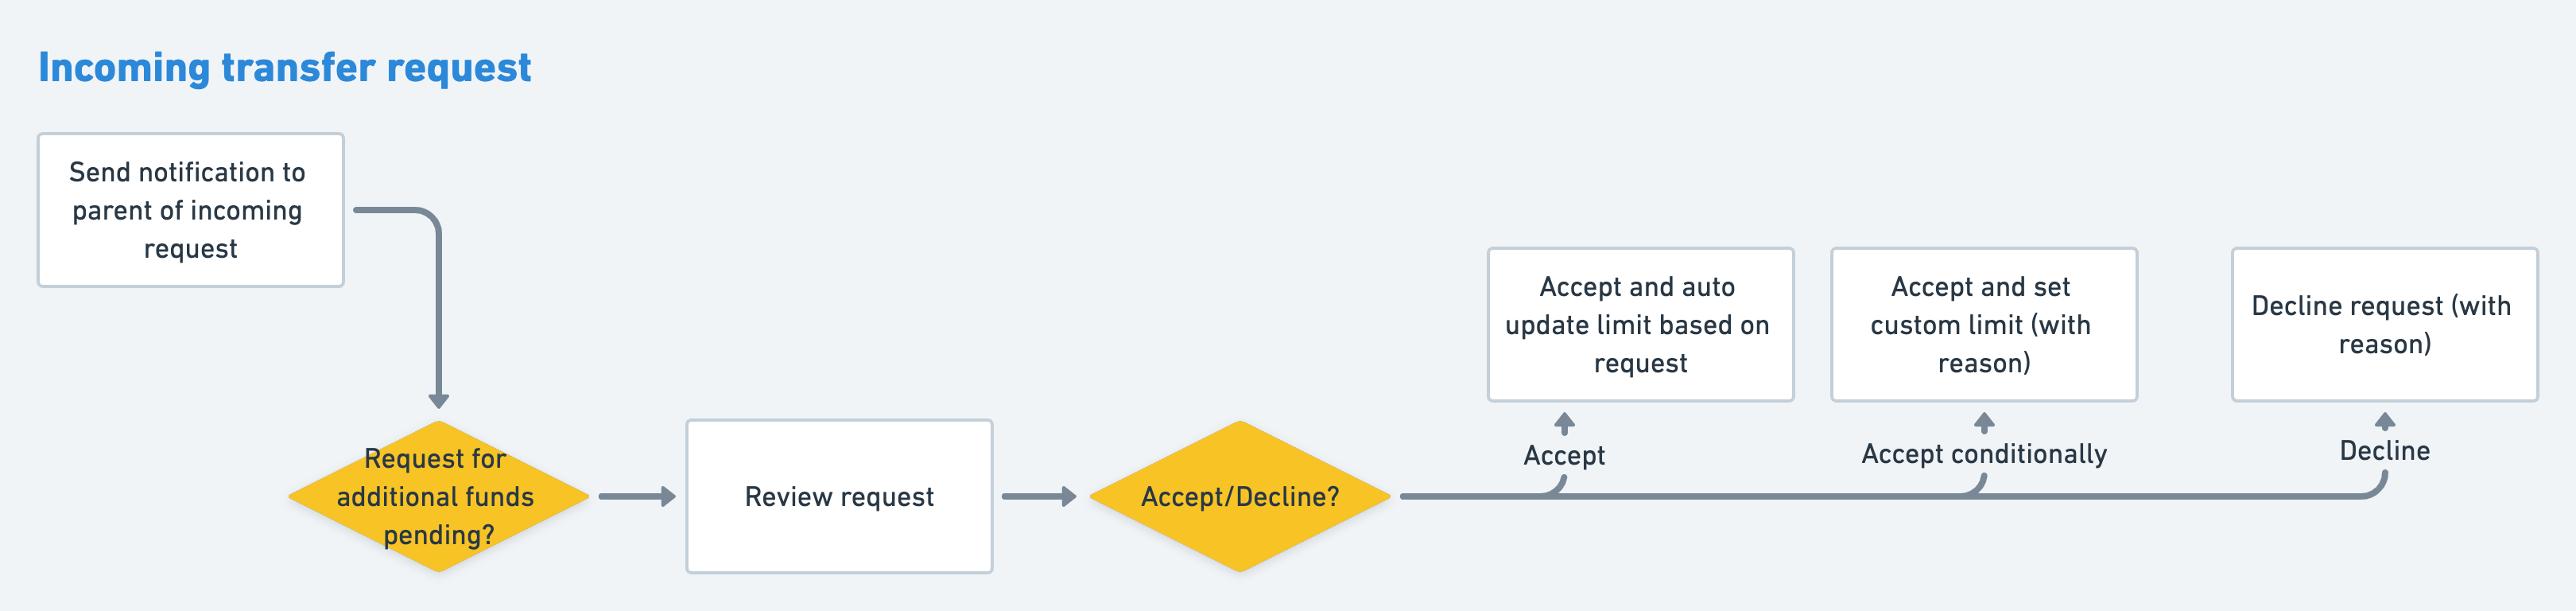 Incoming request flow